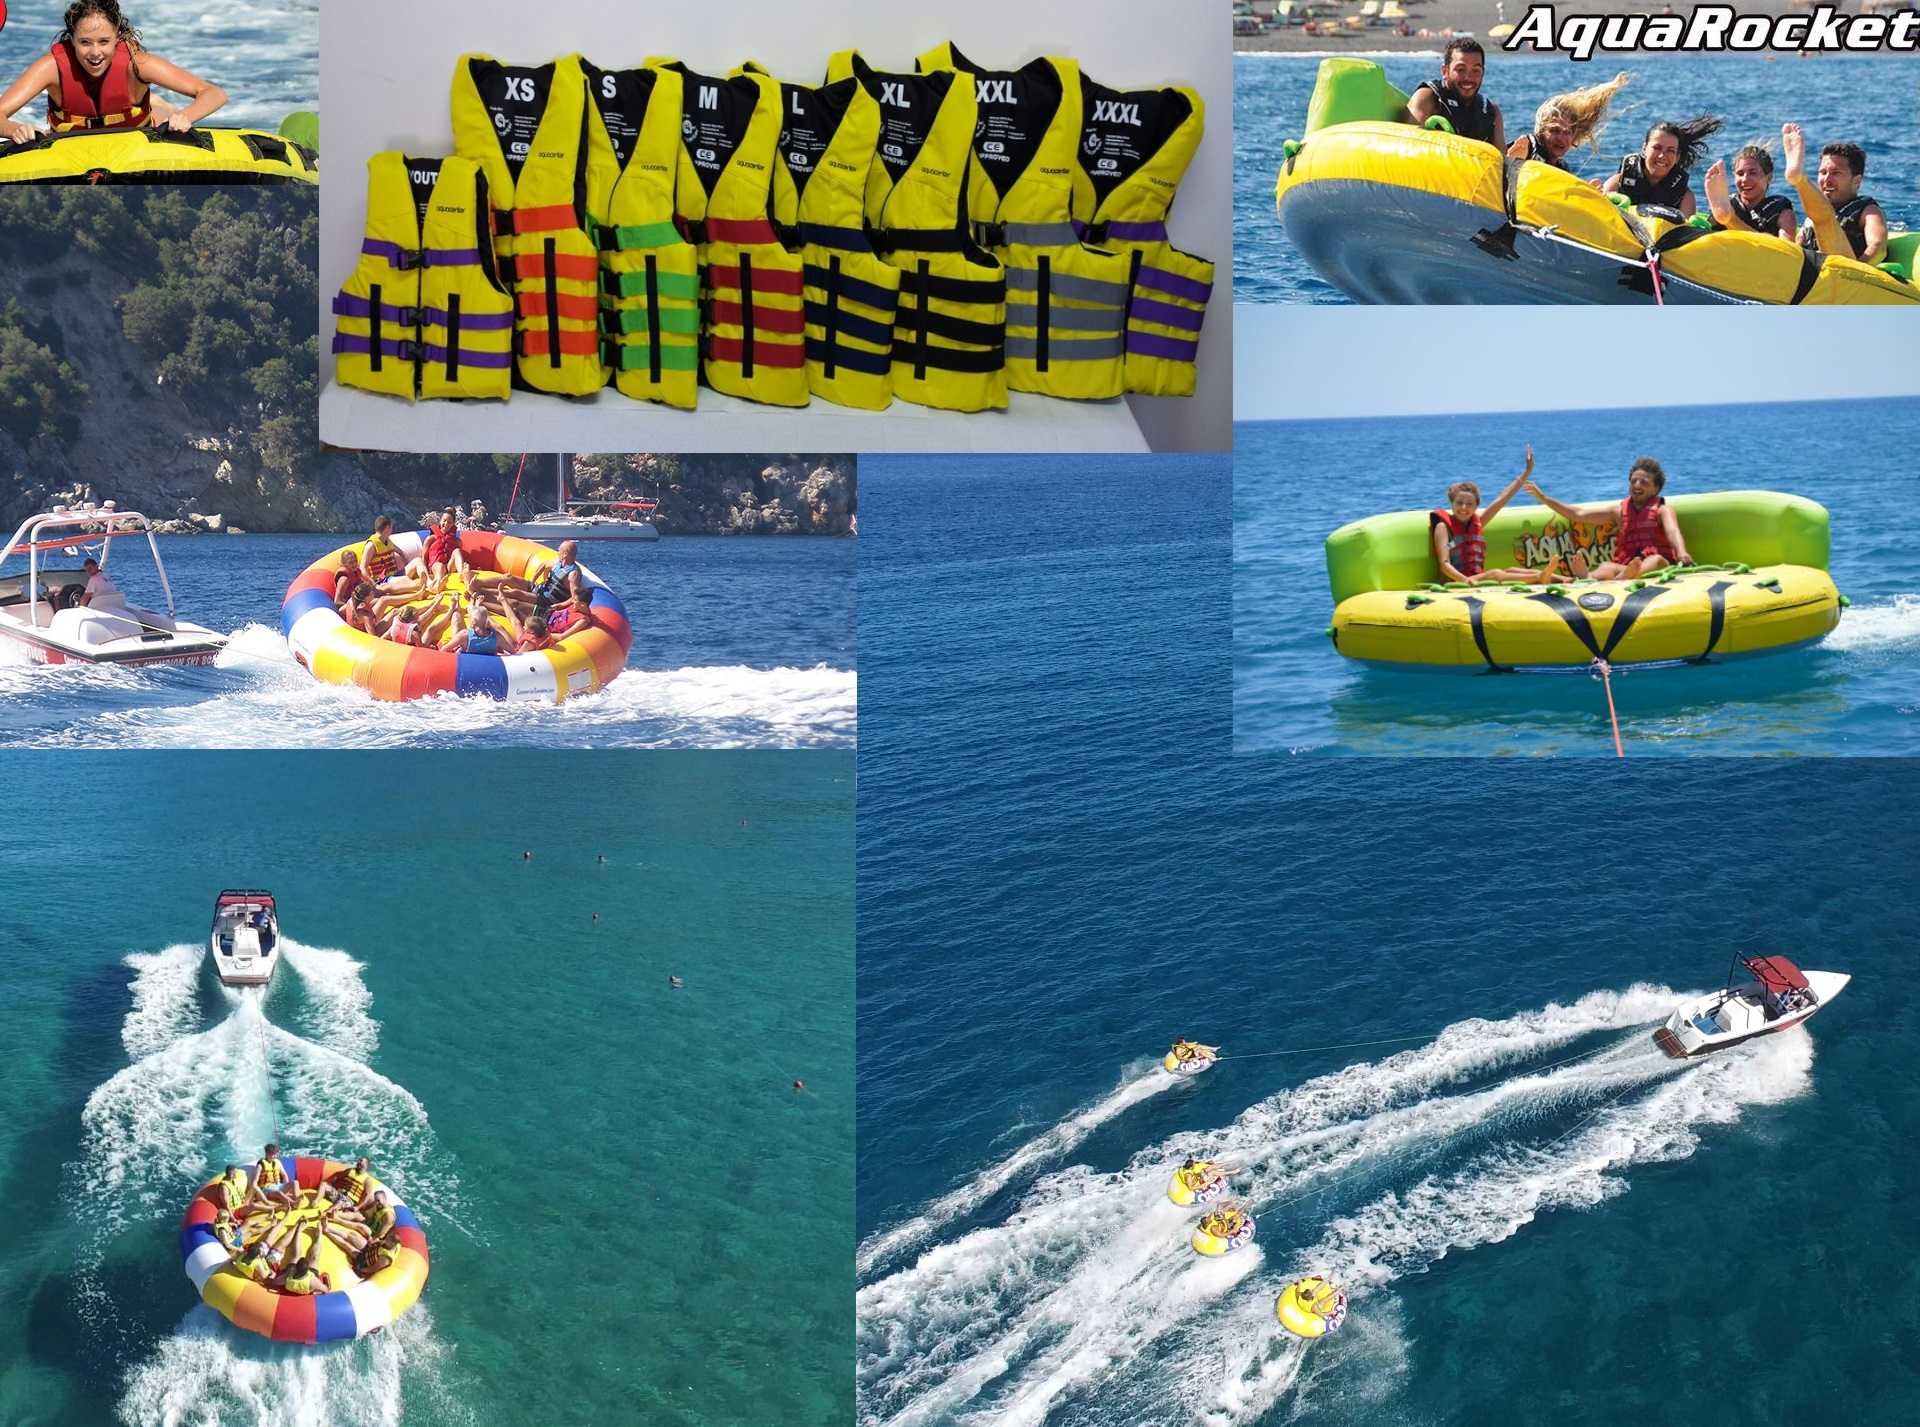 Watersport oprema - Twister, Aquaflyer, Banana, Tube - Hrvatska